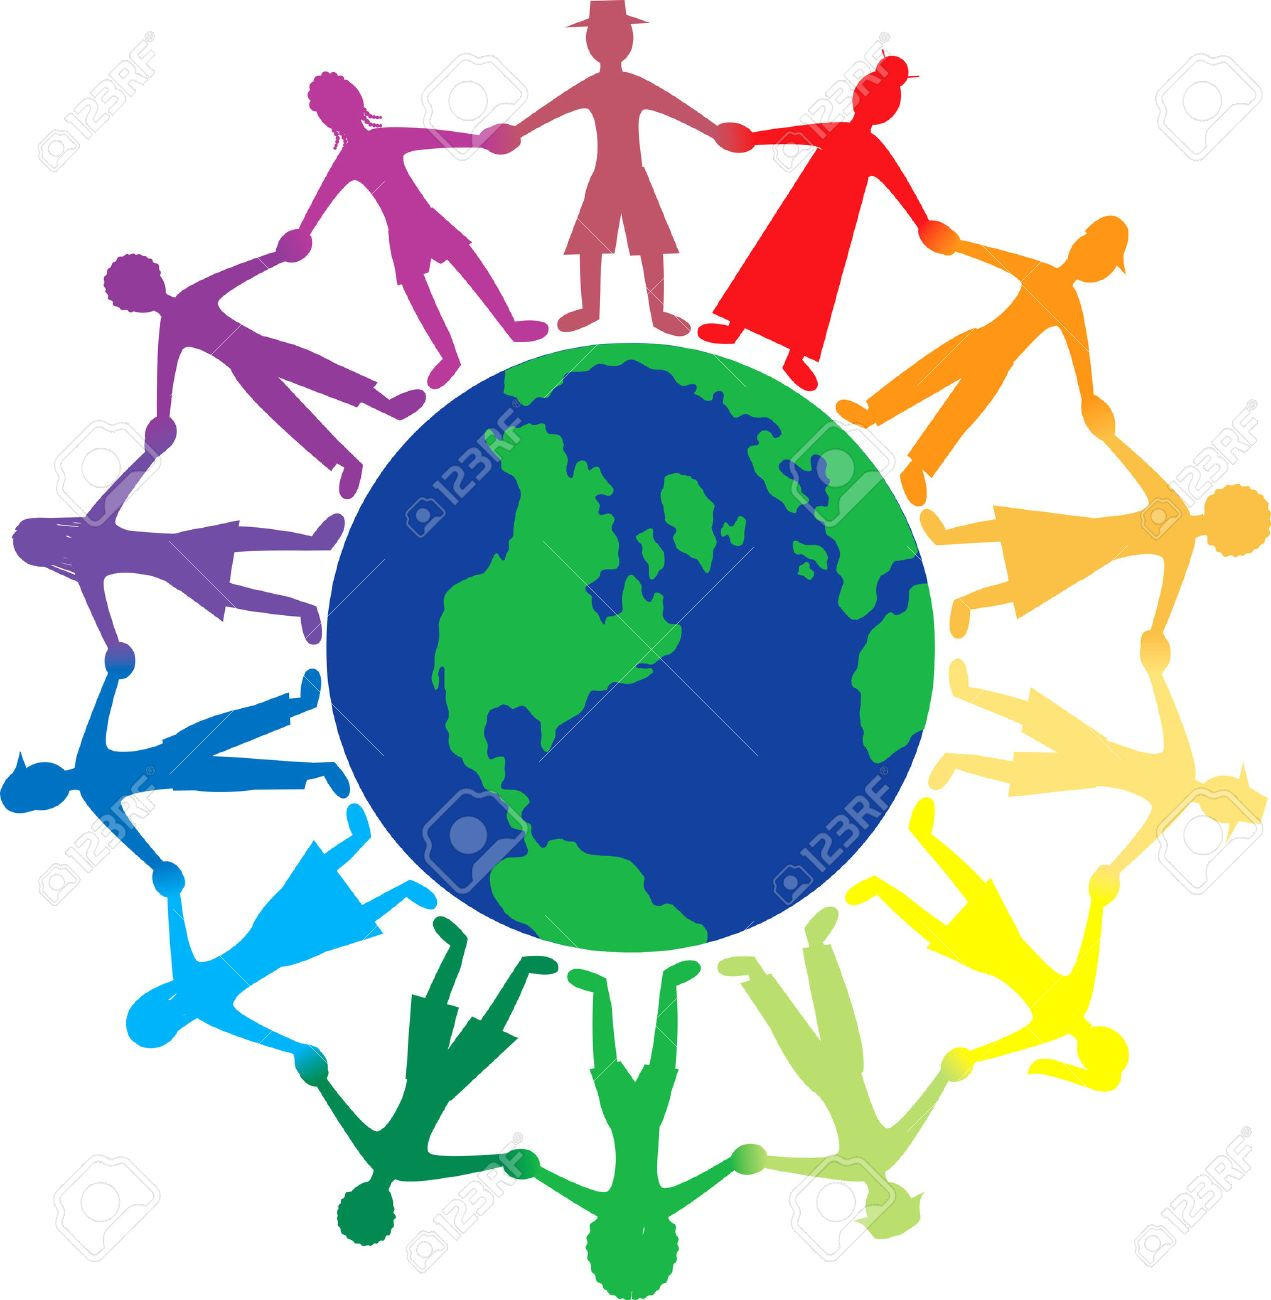 People Holding Hands Around The World Clipart.